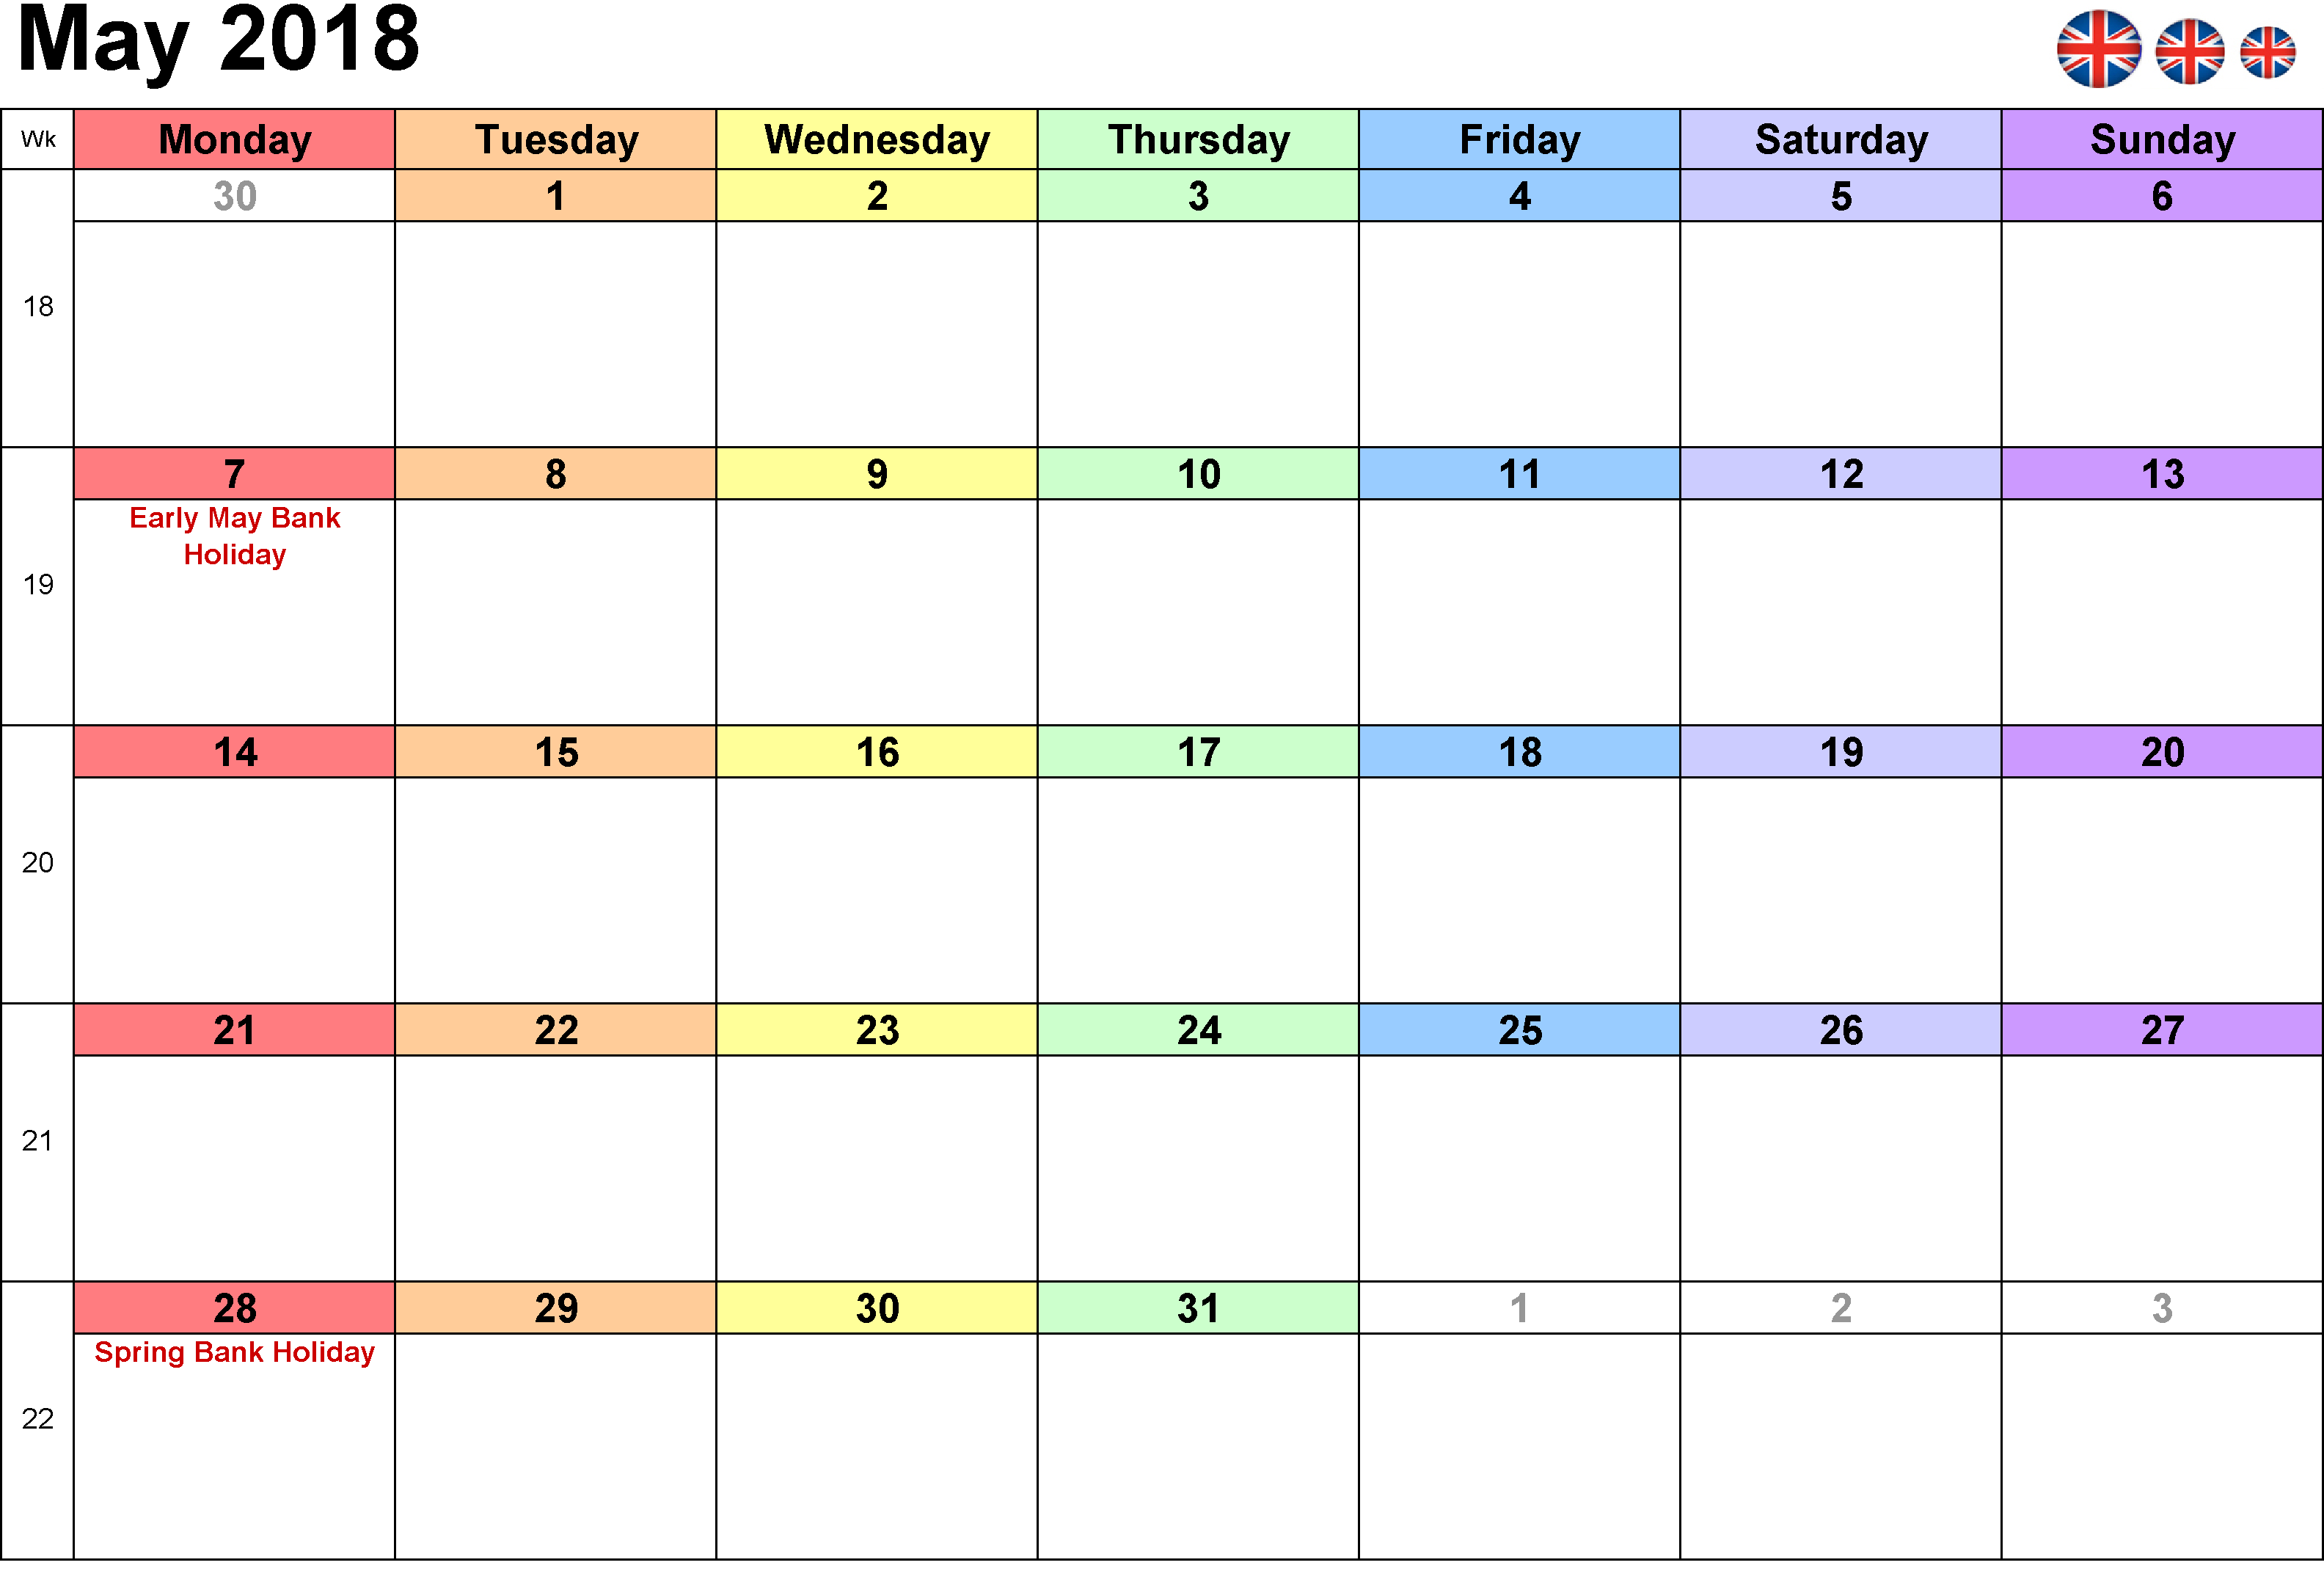 Calendar May 2018 UK Bank Holidays